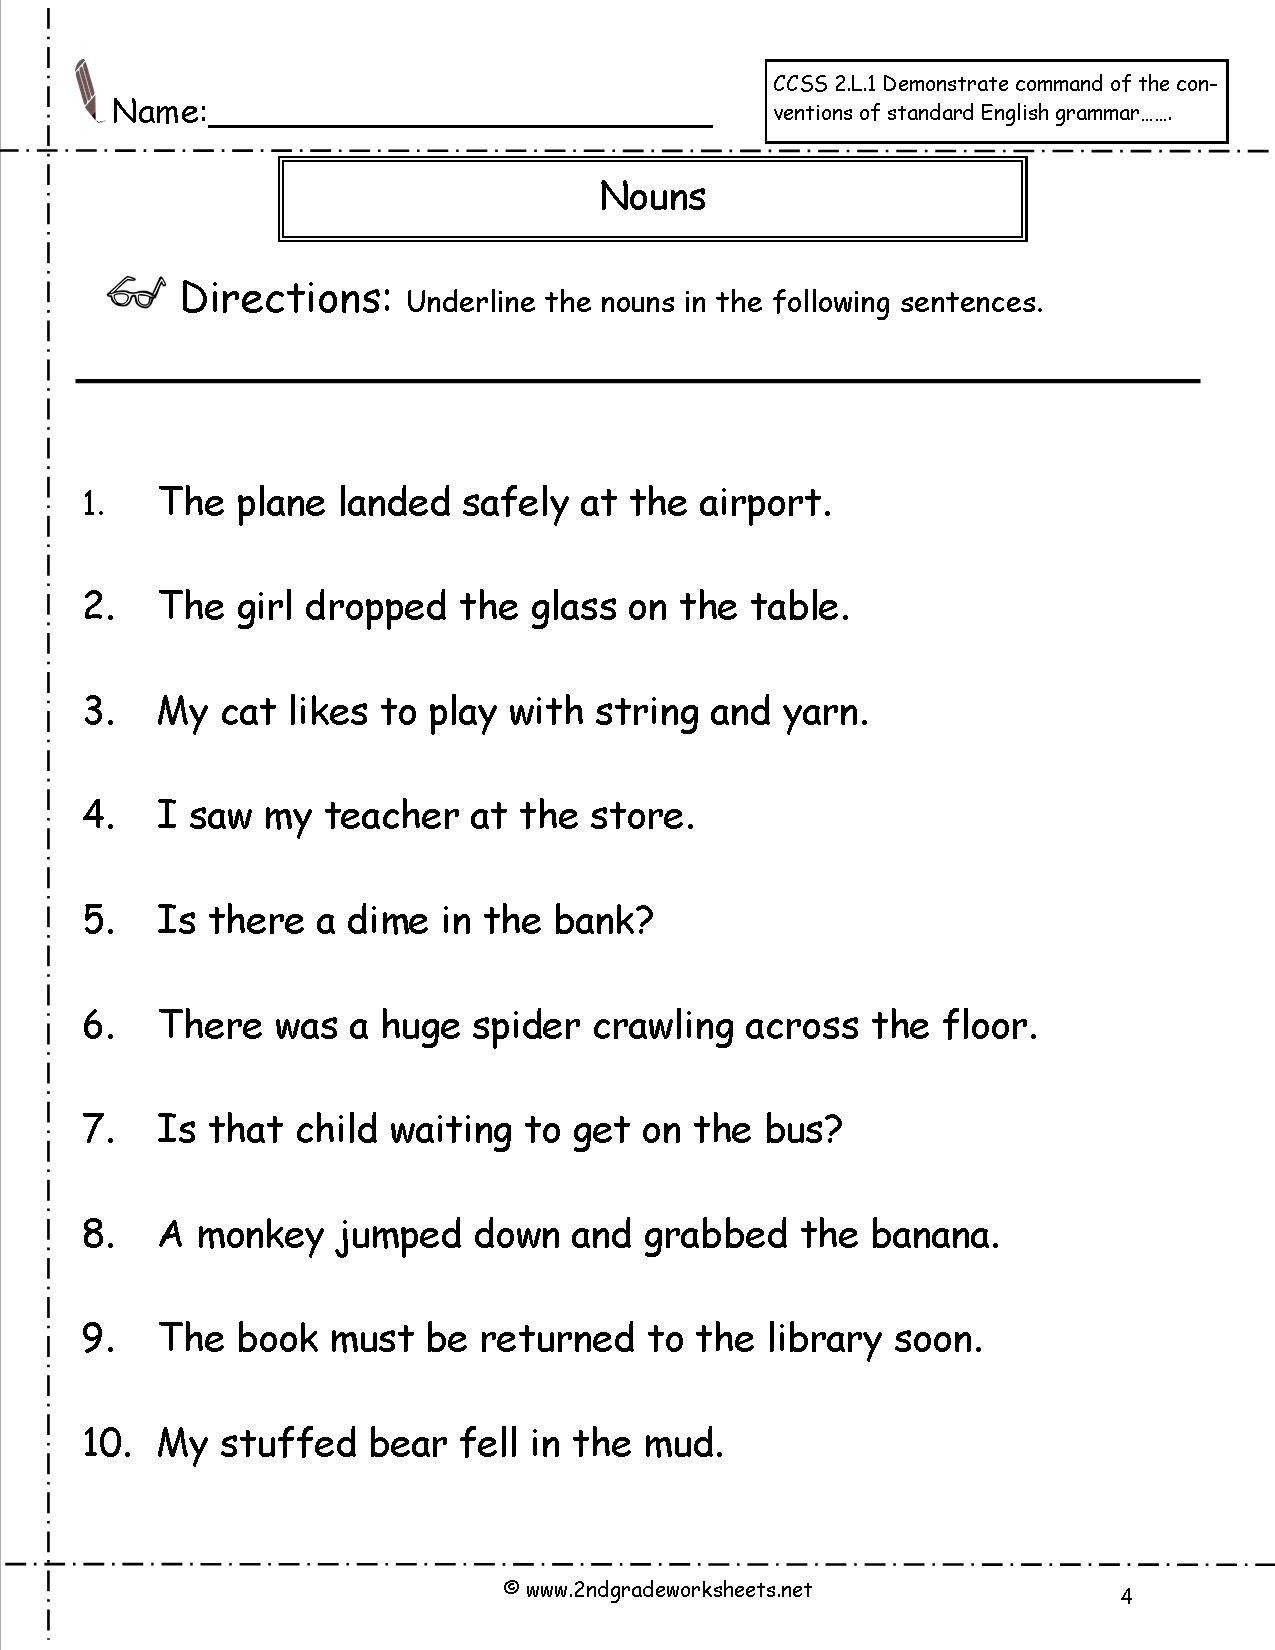 Pronoun Worksheets for 2nd Graders Pronoun Worksheets 2nd